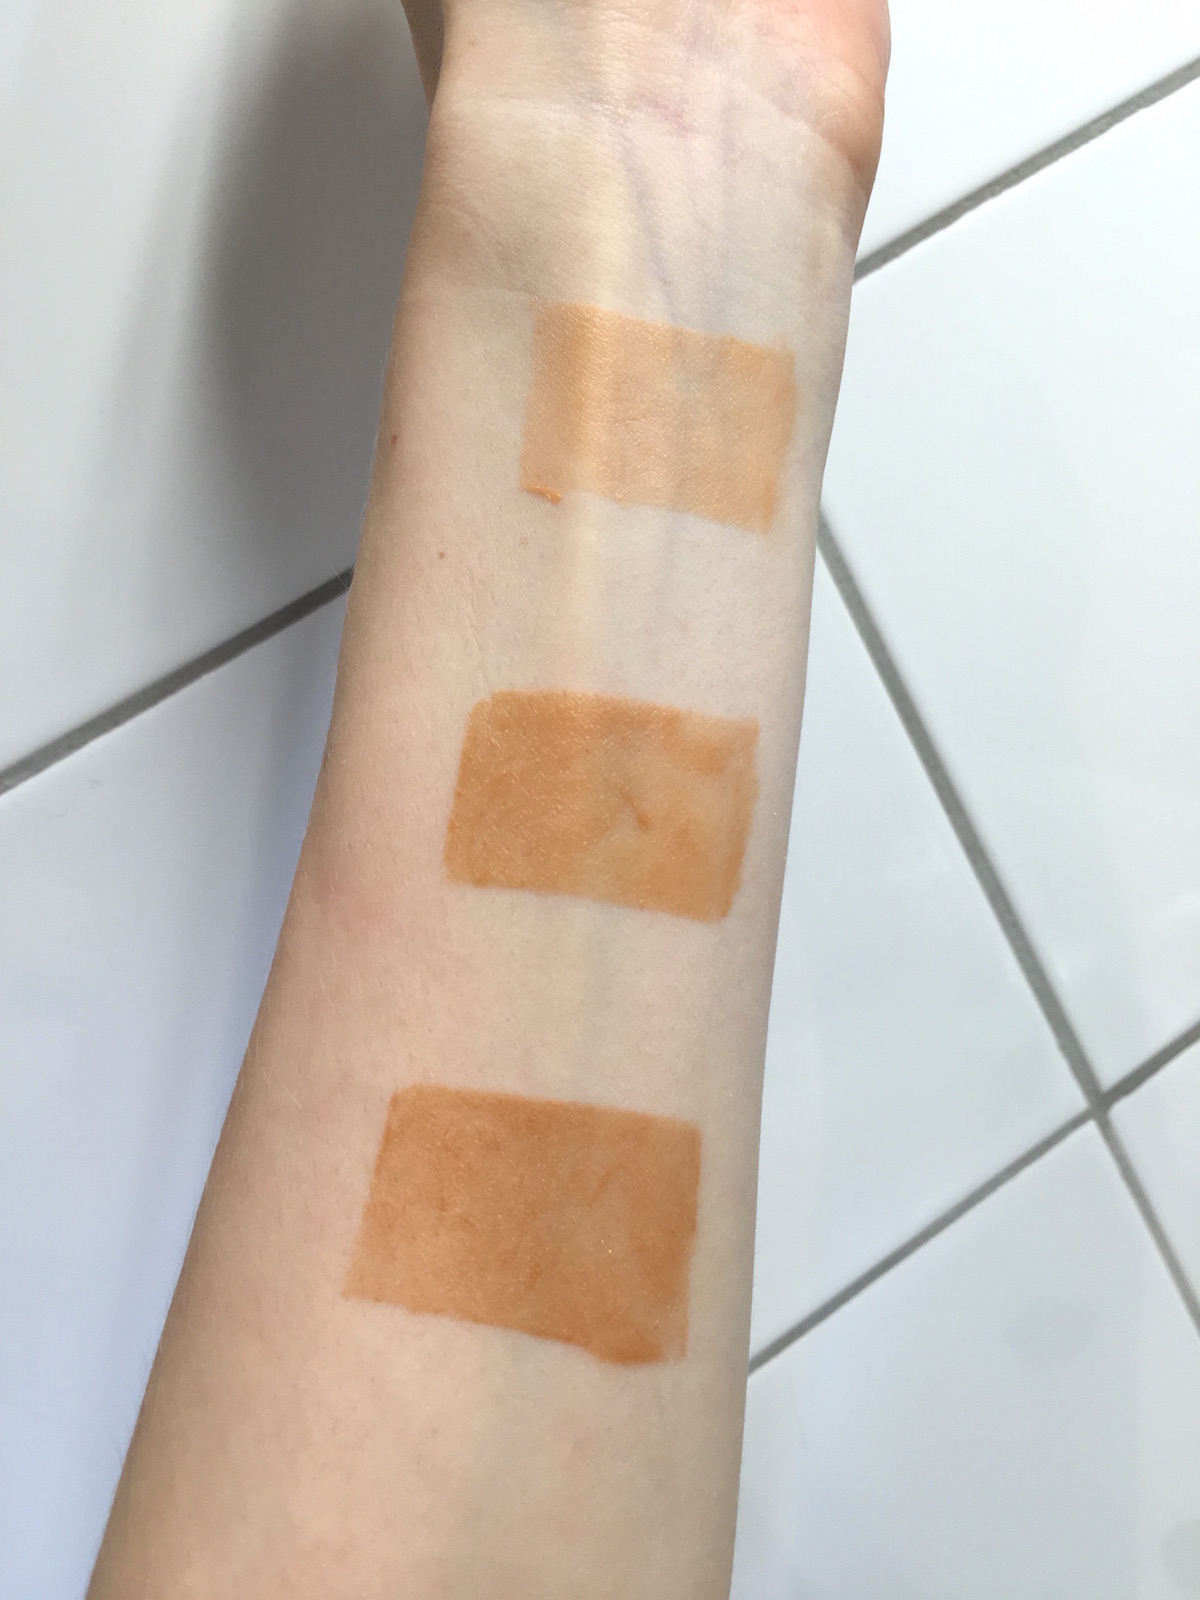 By Terry Terrybly Densiliss Sunglow swatches inside